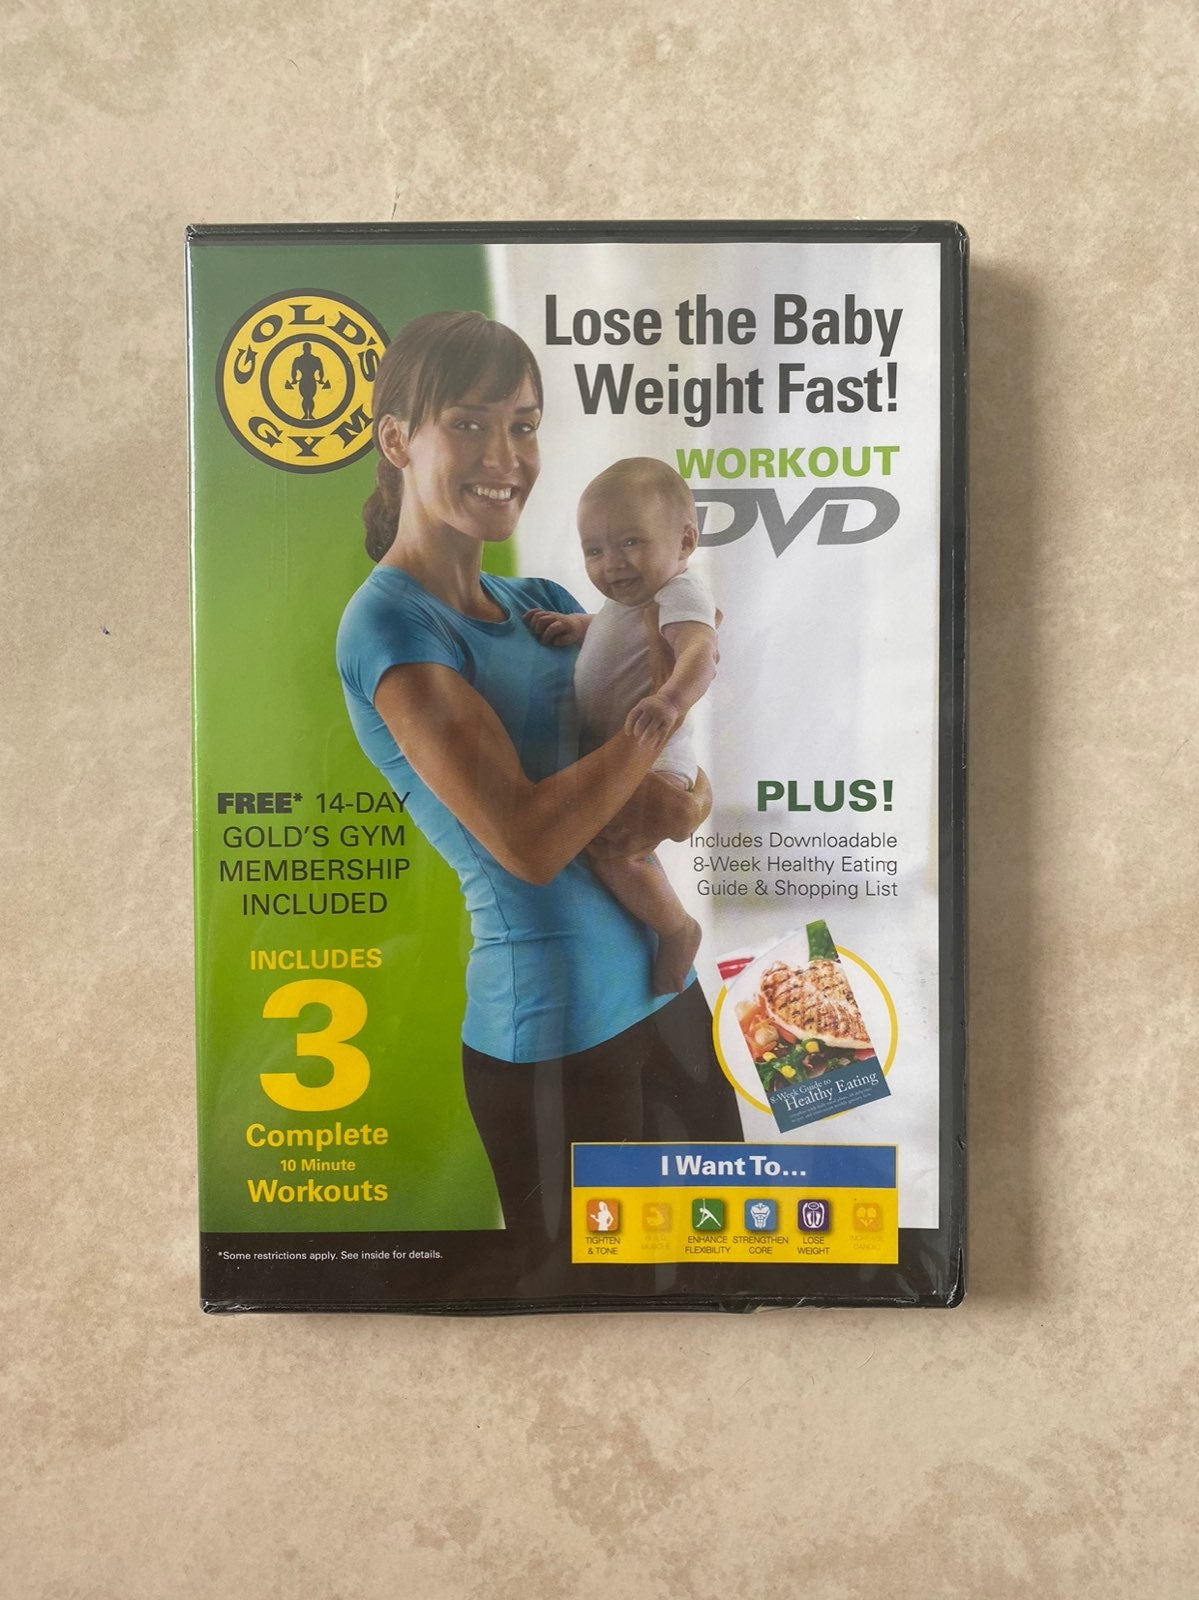 Gold's Gym Lose the Baby Weight Fast DVD